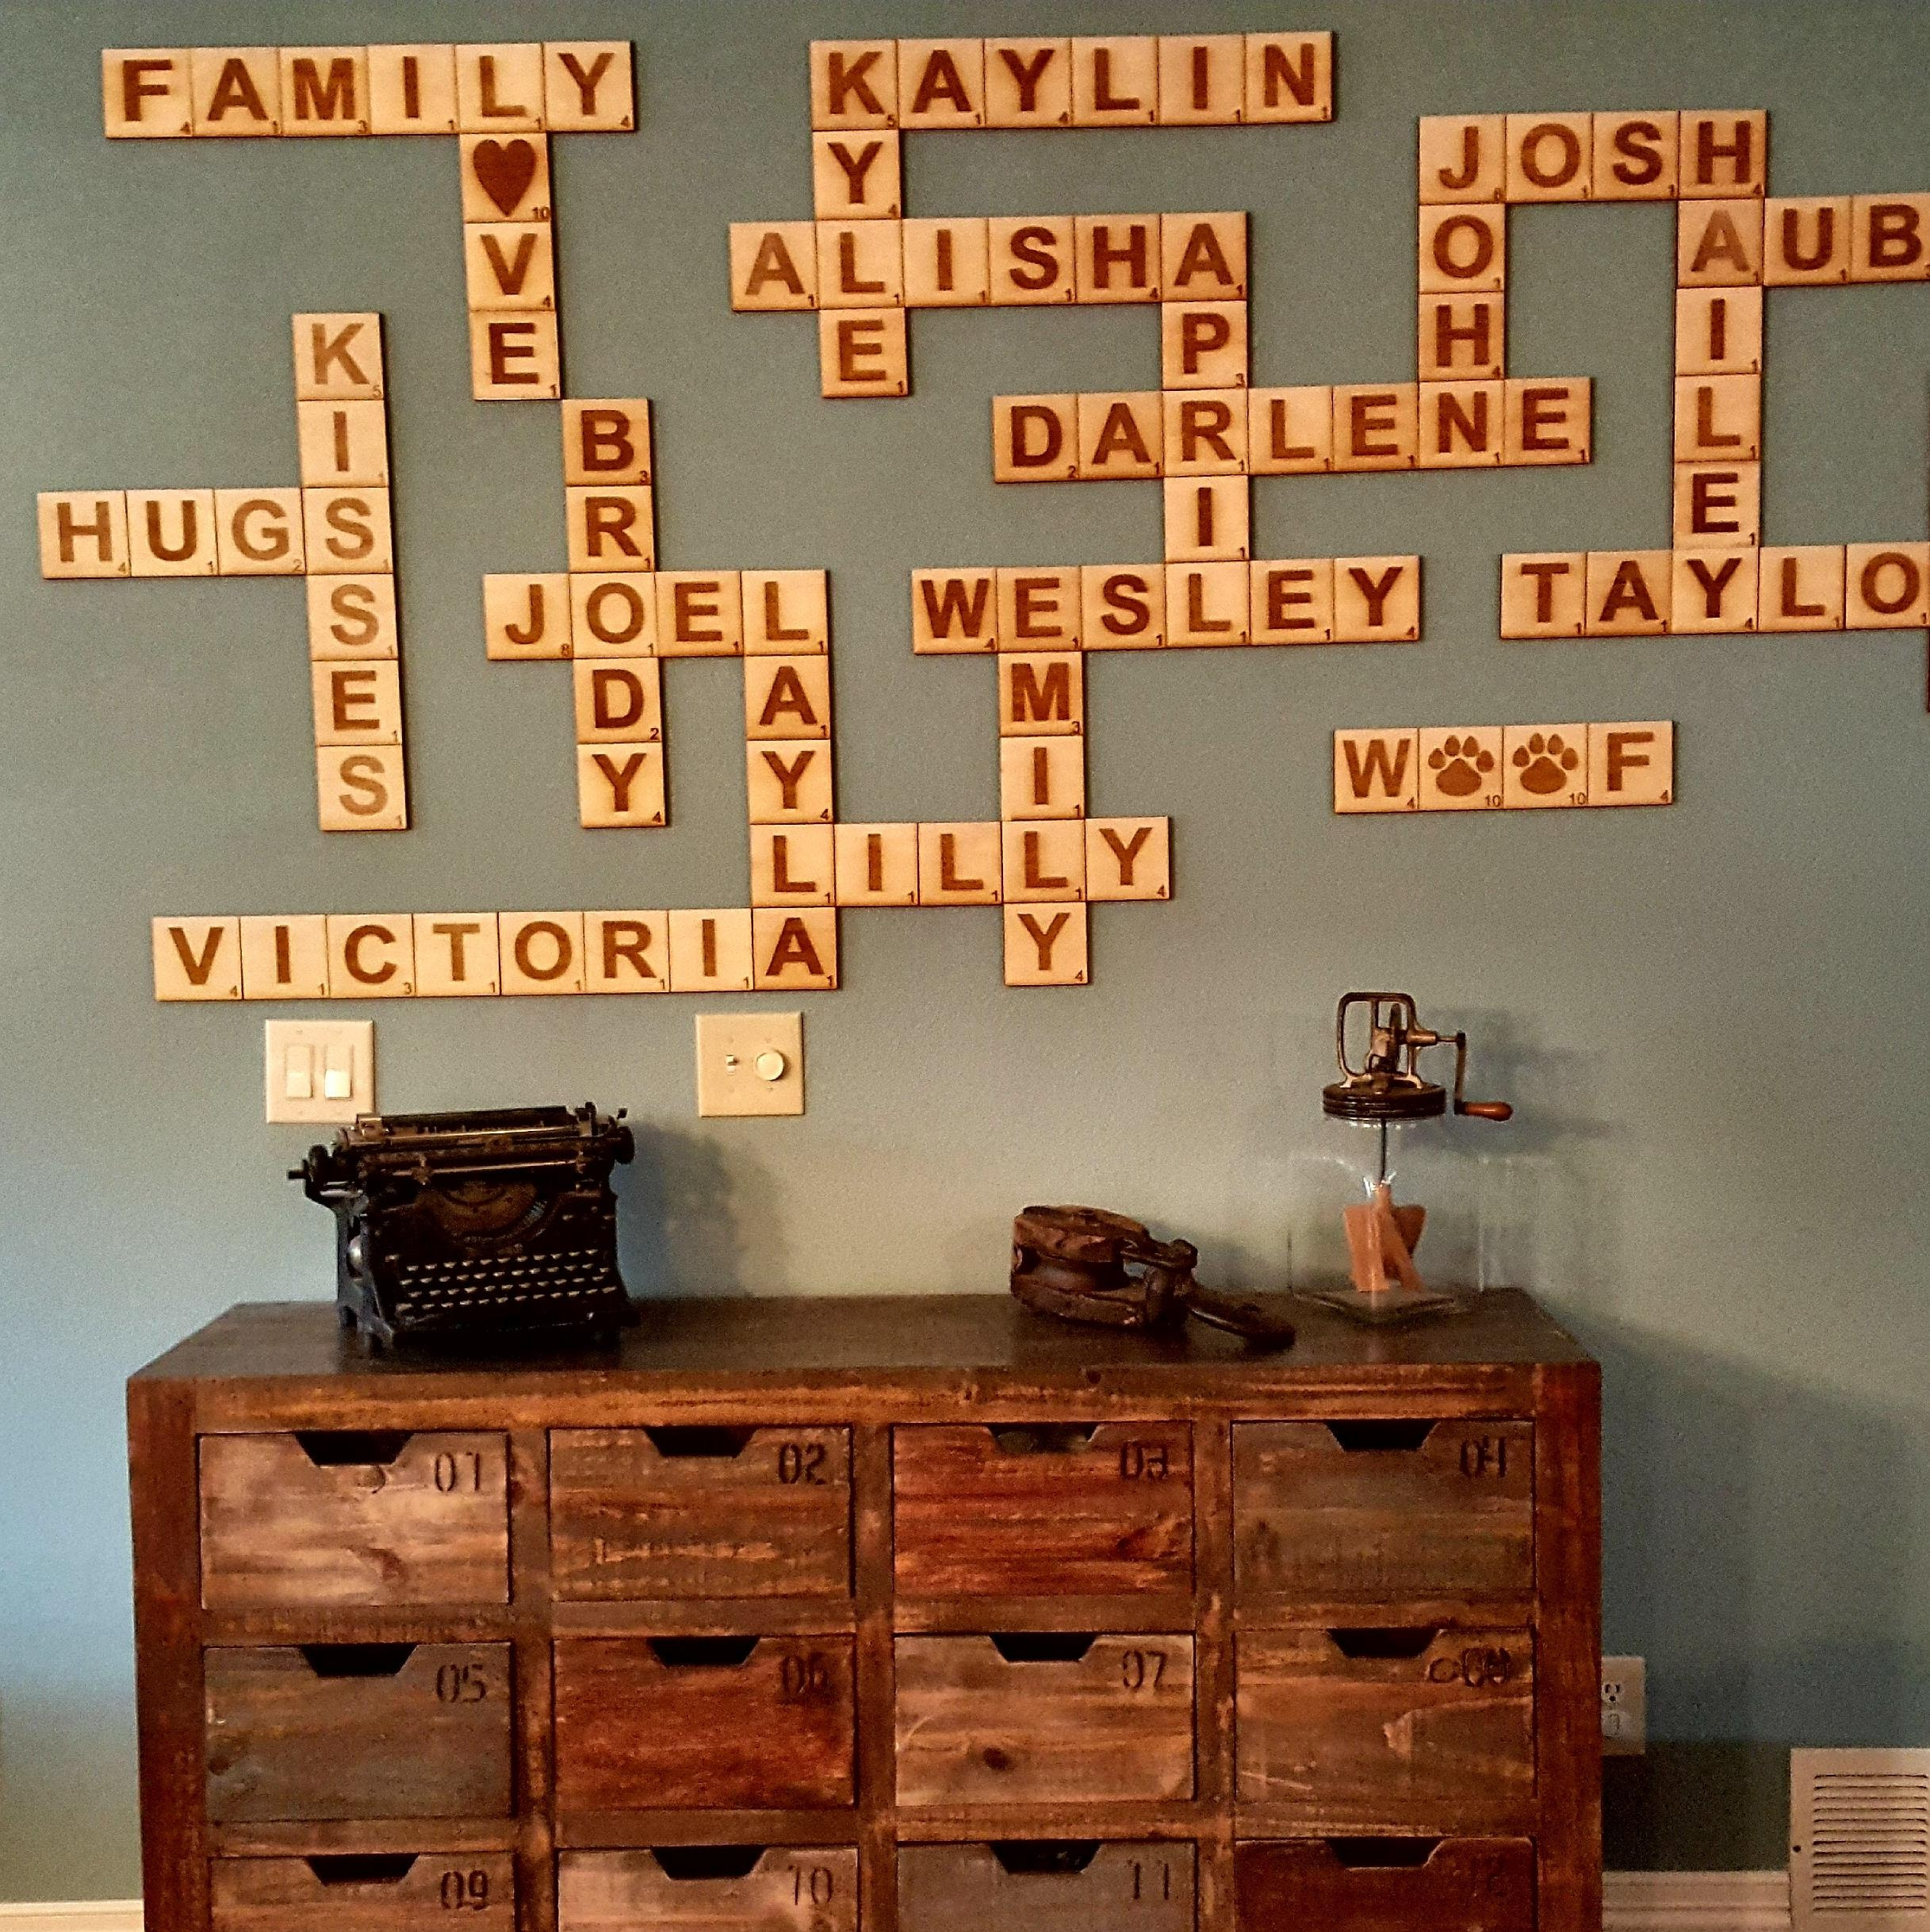 Scrabble Wall Tiles, Scrabble Letters, Scrabble Tiles, Scrabble Pertaining To Scrabble Letter Wall Art (View 9 of 20)